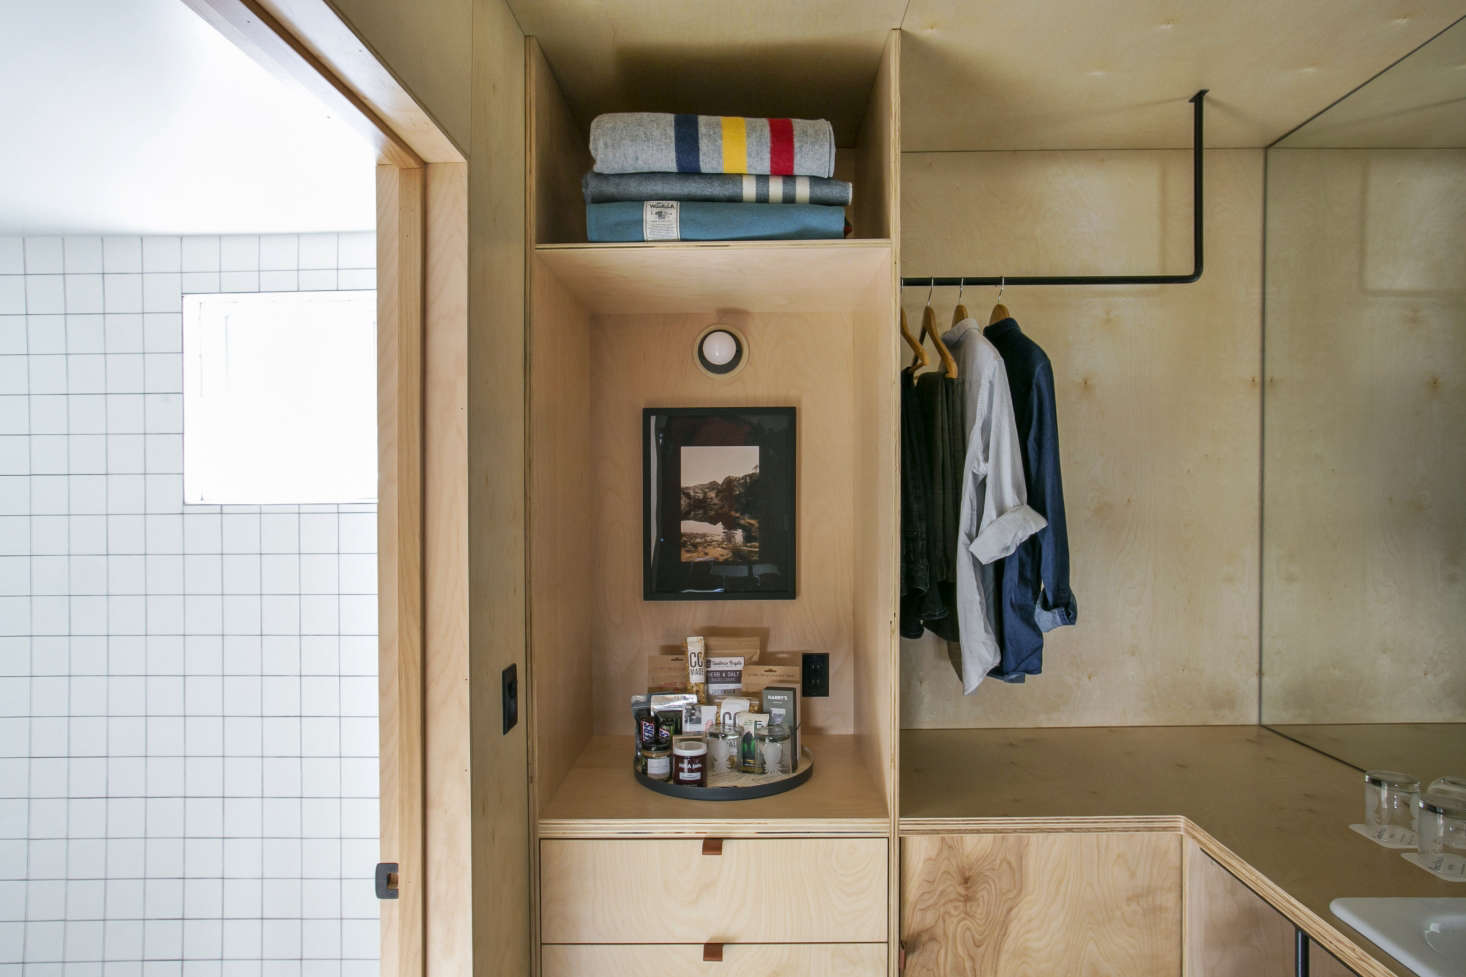 Plywood creates smart storage opportunities in a small hotel bathroom/closet. For more, see Bathroom of the Week: An Economical Plywood Bath in Tahoe.